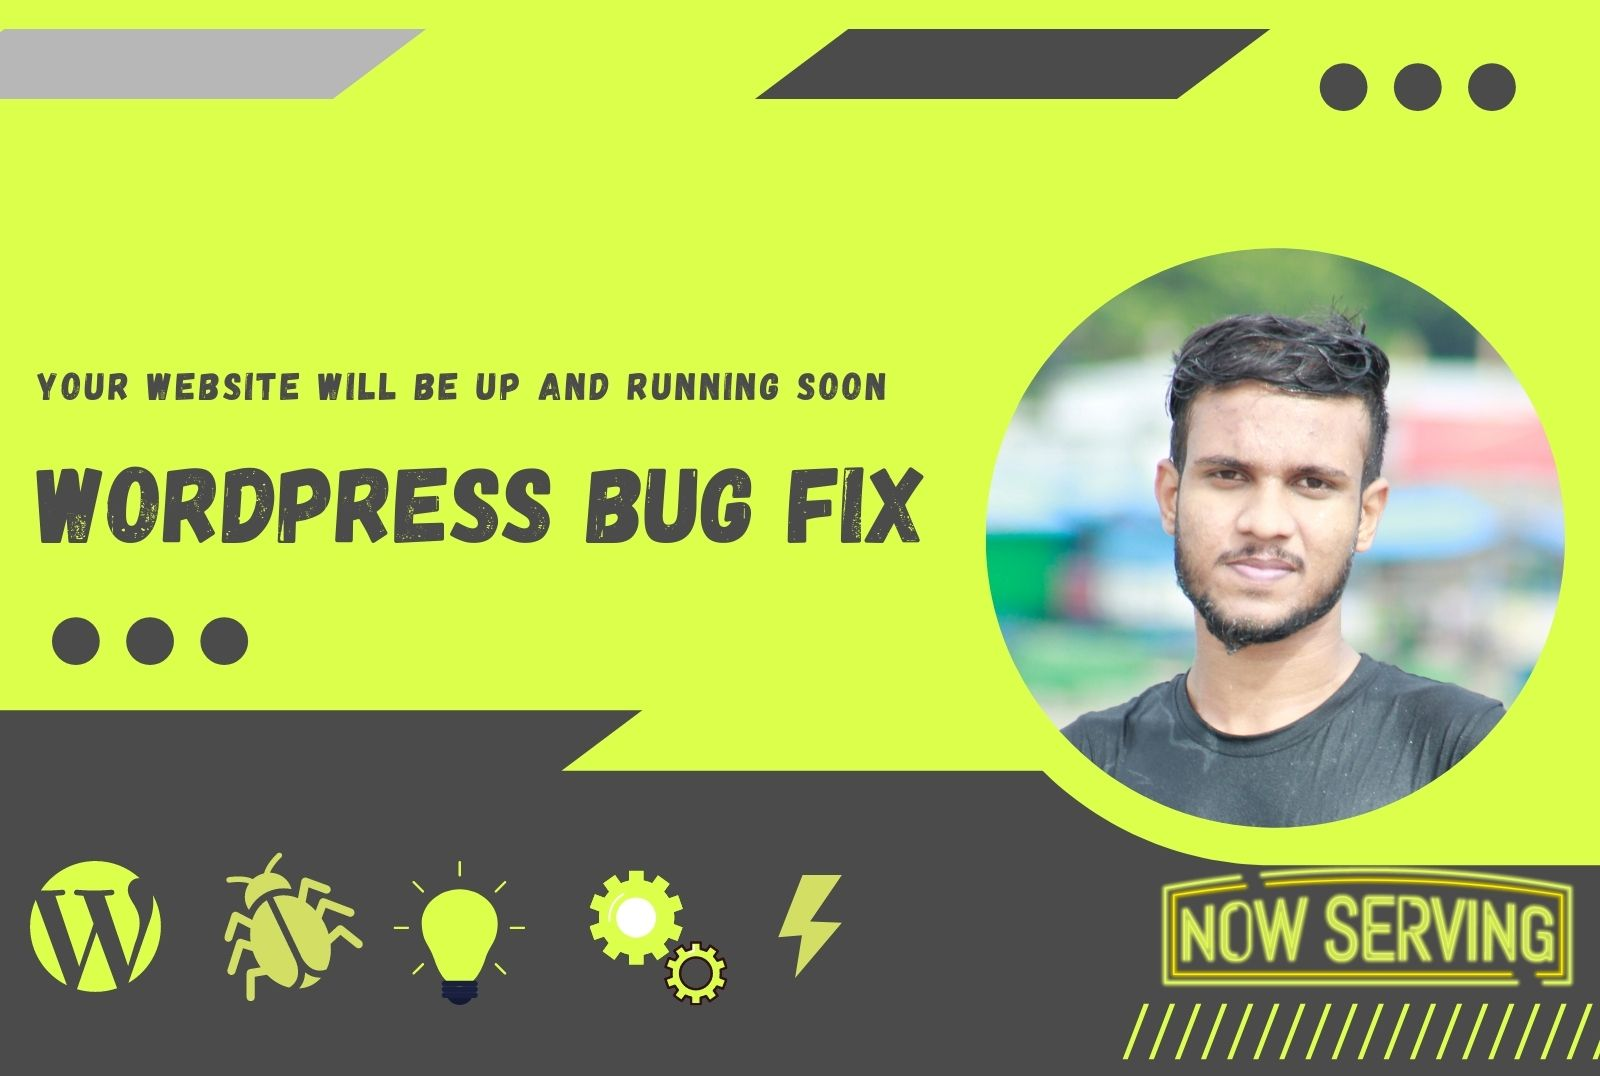 I will fix or debug WordPress website bug issues errors